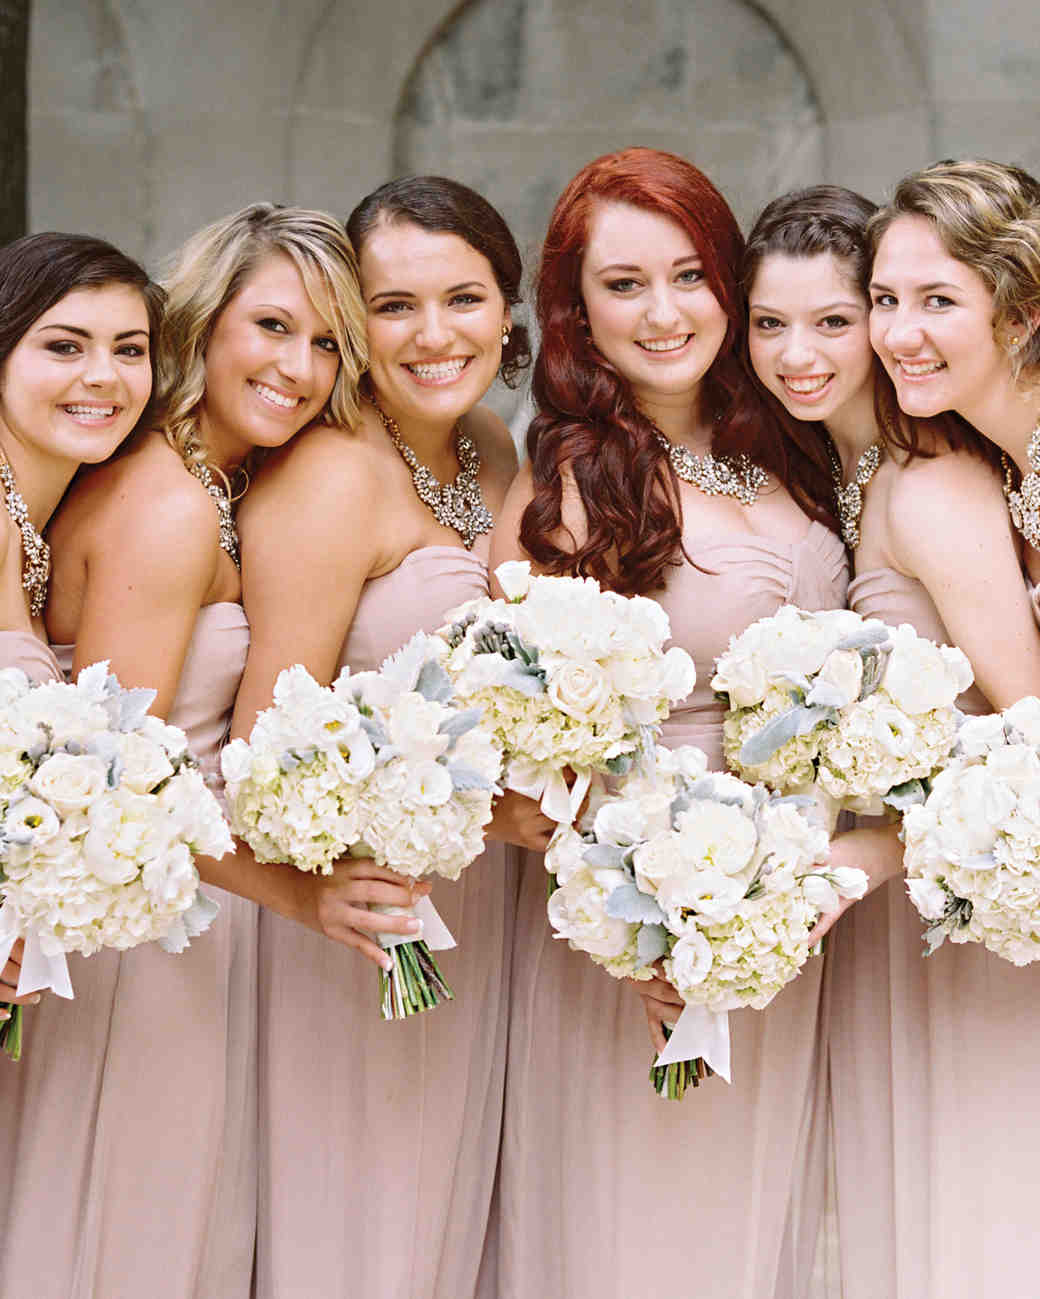 elizabeth-cody-real-wedding-bridesmaids-pink-dresses-bouquets.jpg